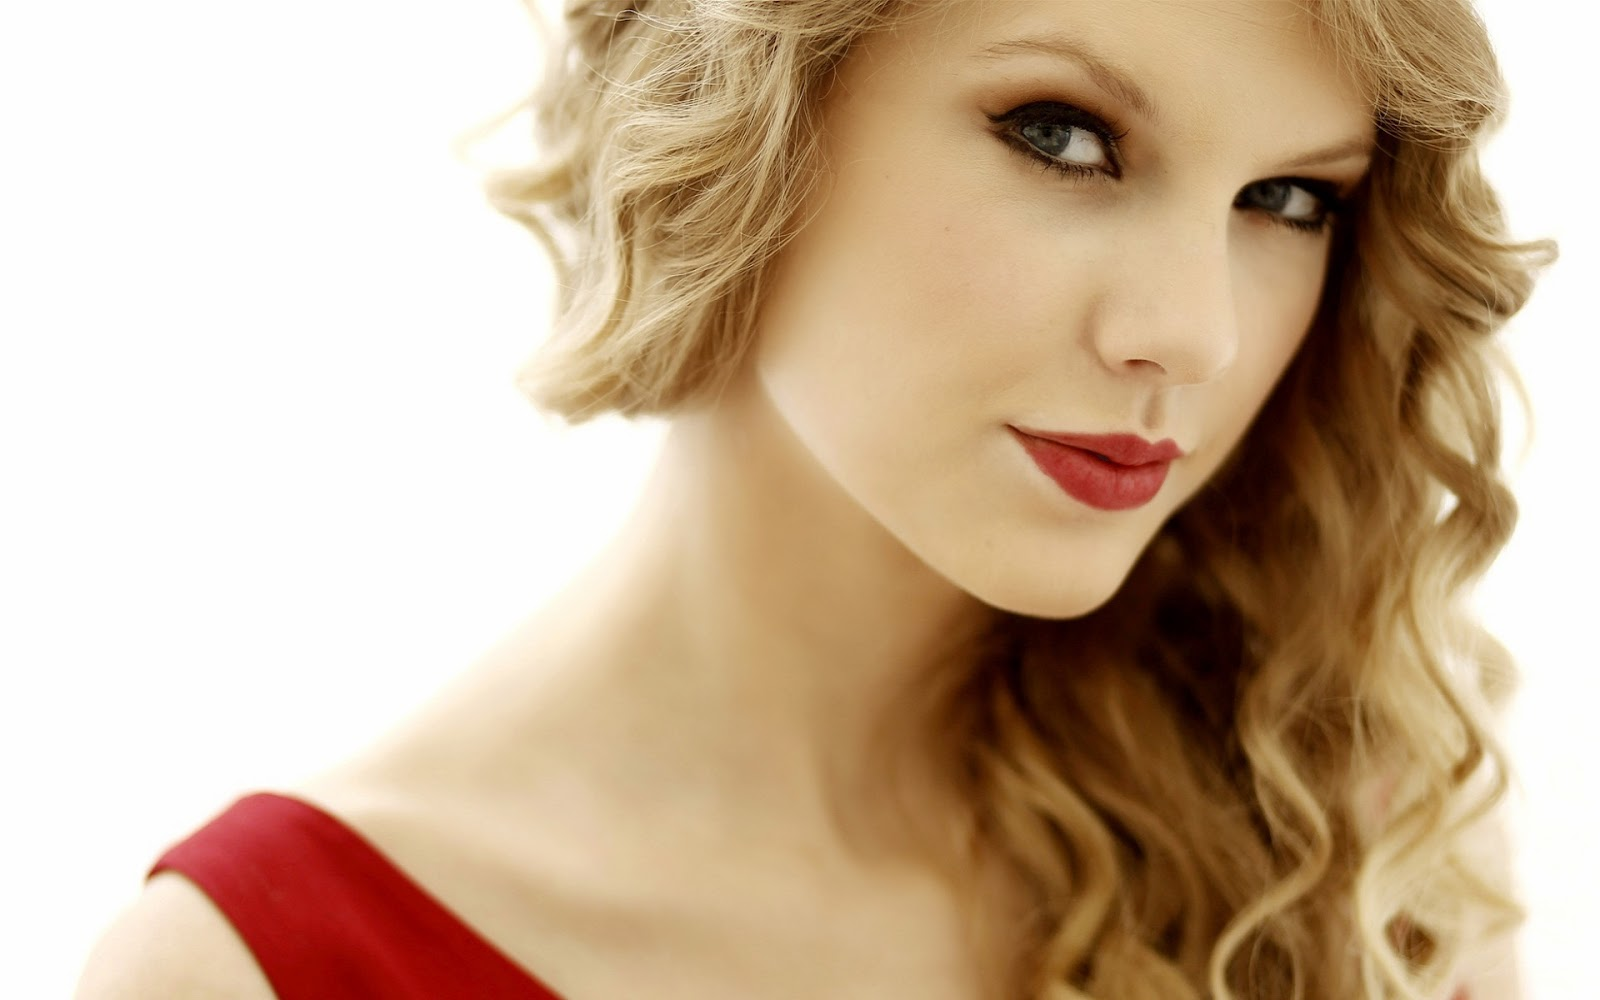 taylor swift hd wallpapers, celebrity desktop wallpapers | full